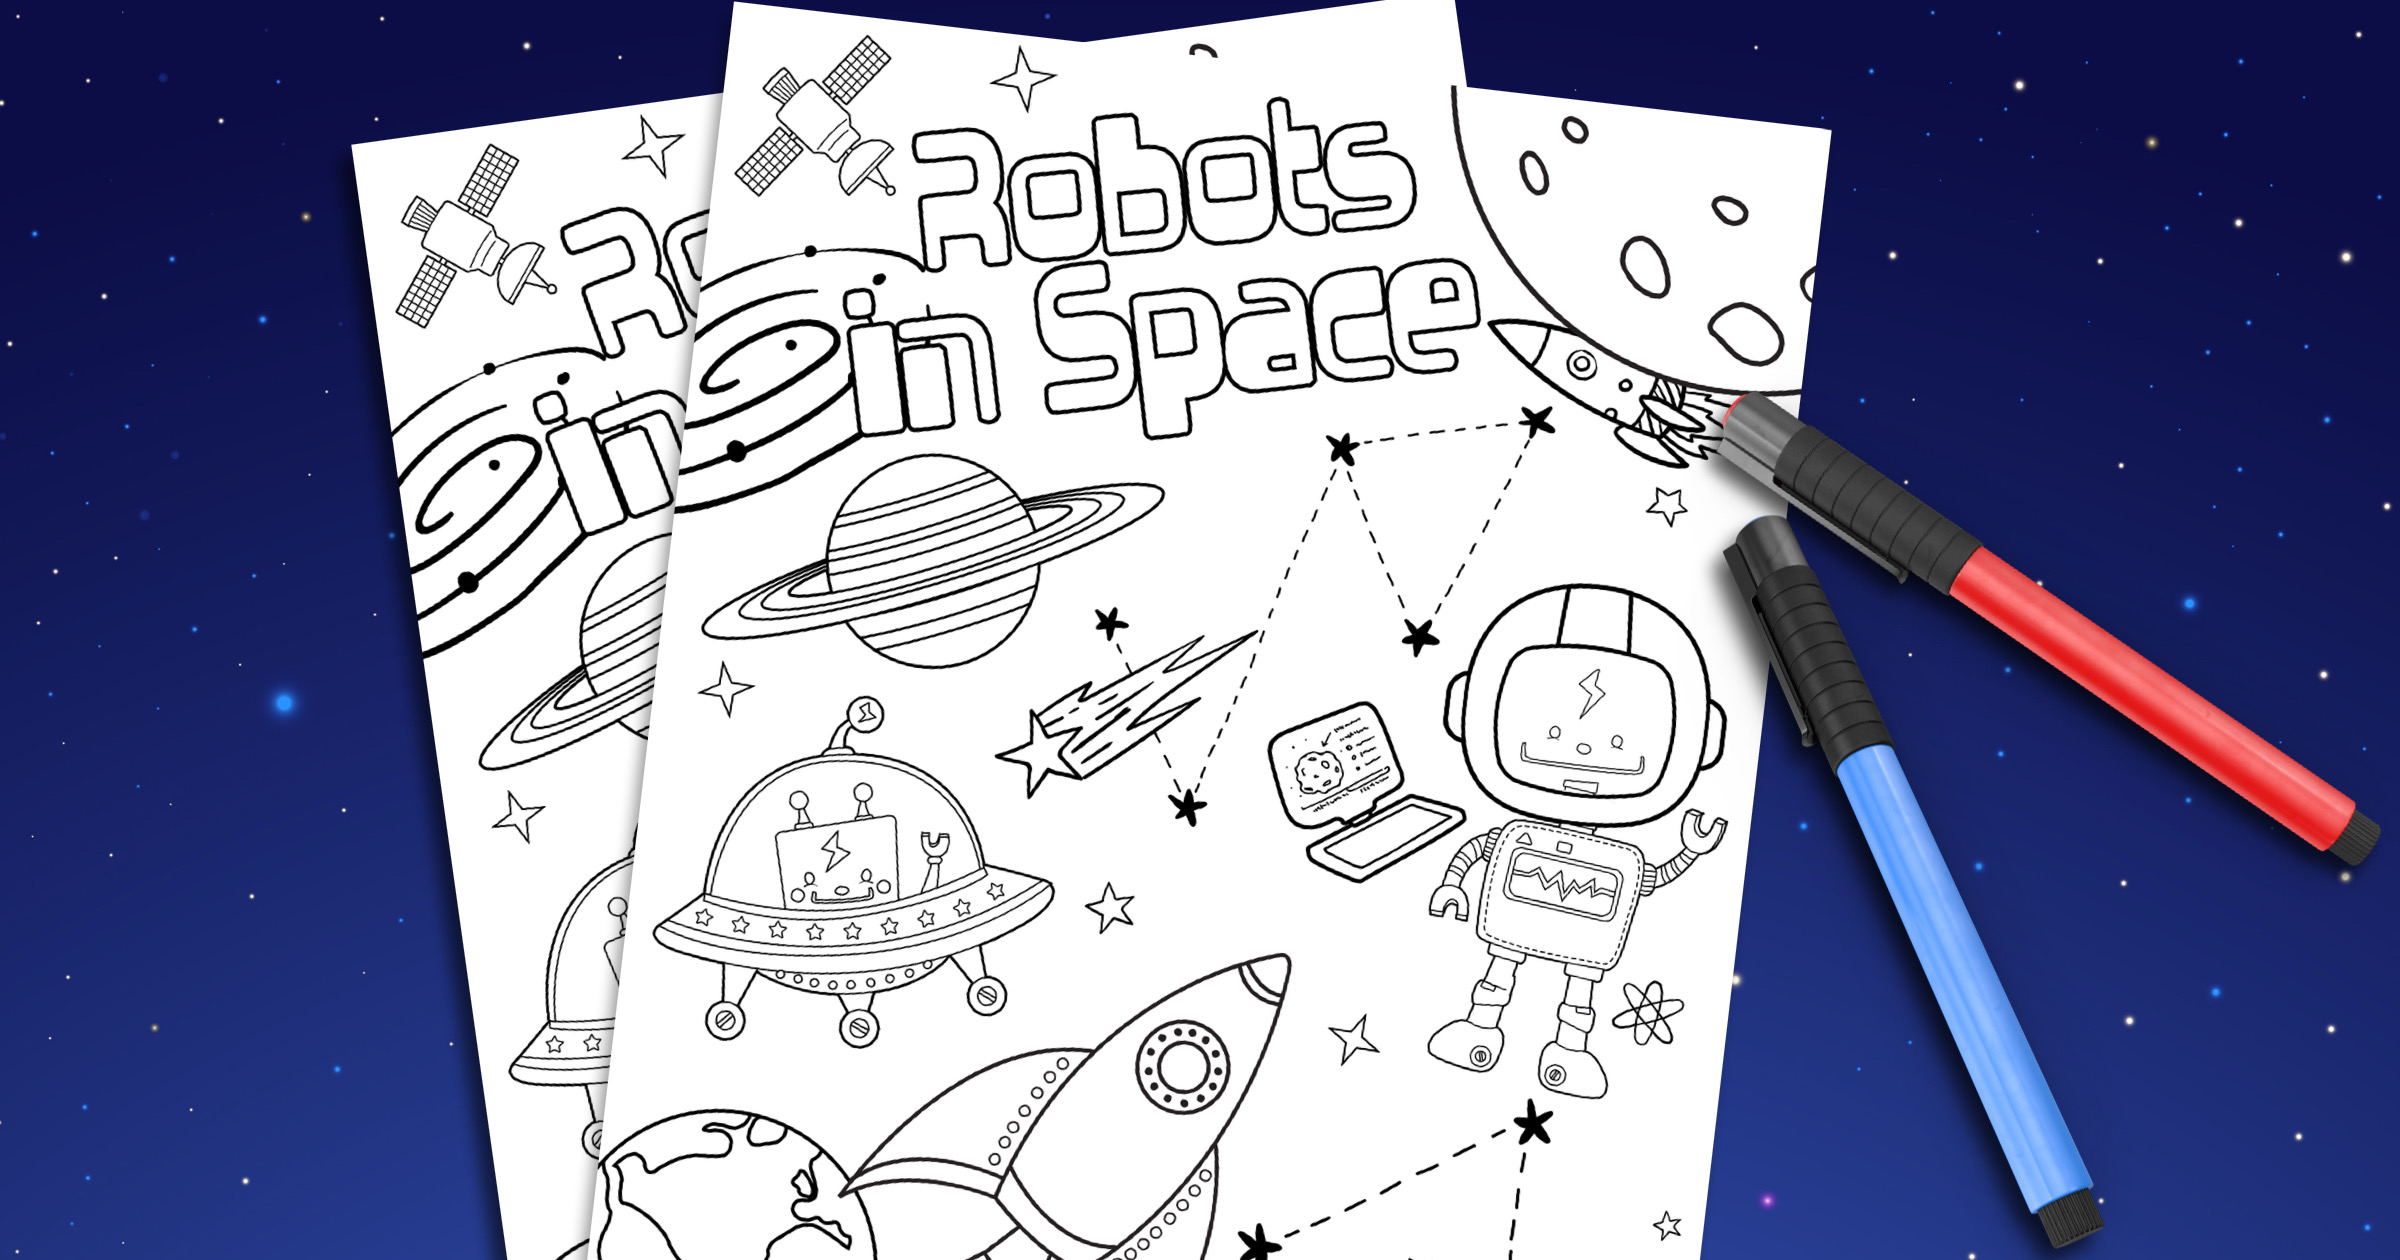 Robots In Space Coloring Page + 15 More STEM Printables - FREE! 13